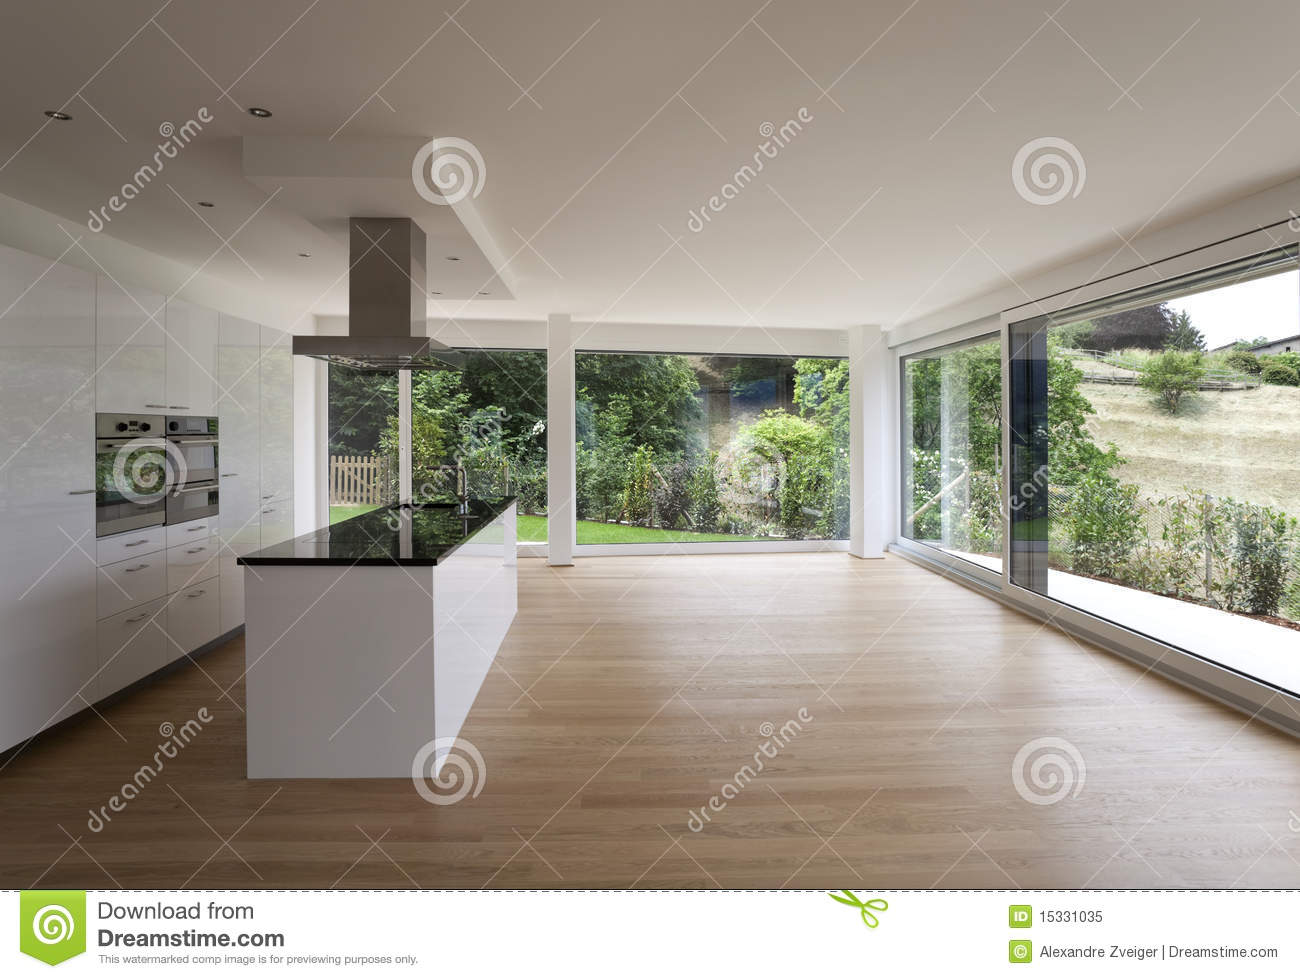 Bel int rieur d 39 une maison moderne photo libre de droits for Modele de decoration interieure maison